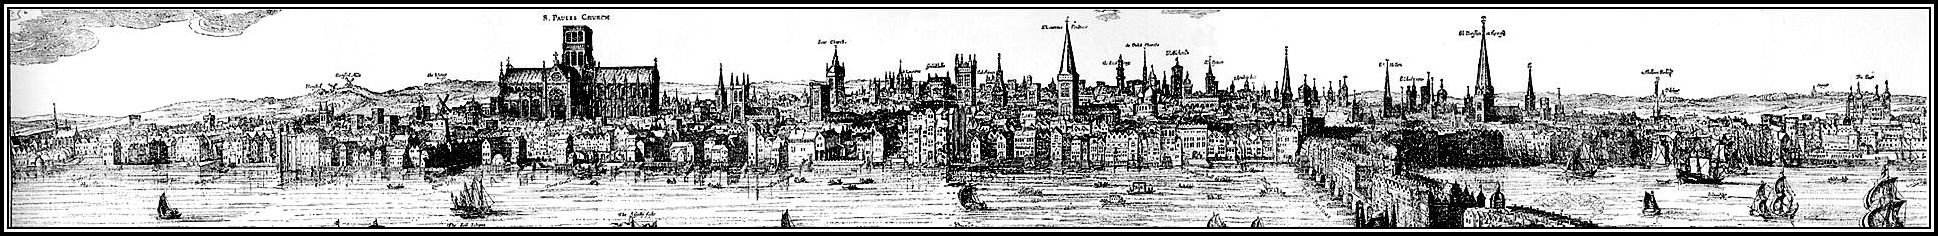 2115px-panorama_of_london_by_claes_van_visscher_1616_no_angels-e1378061705880